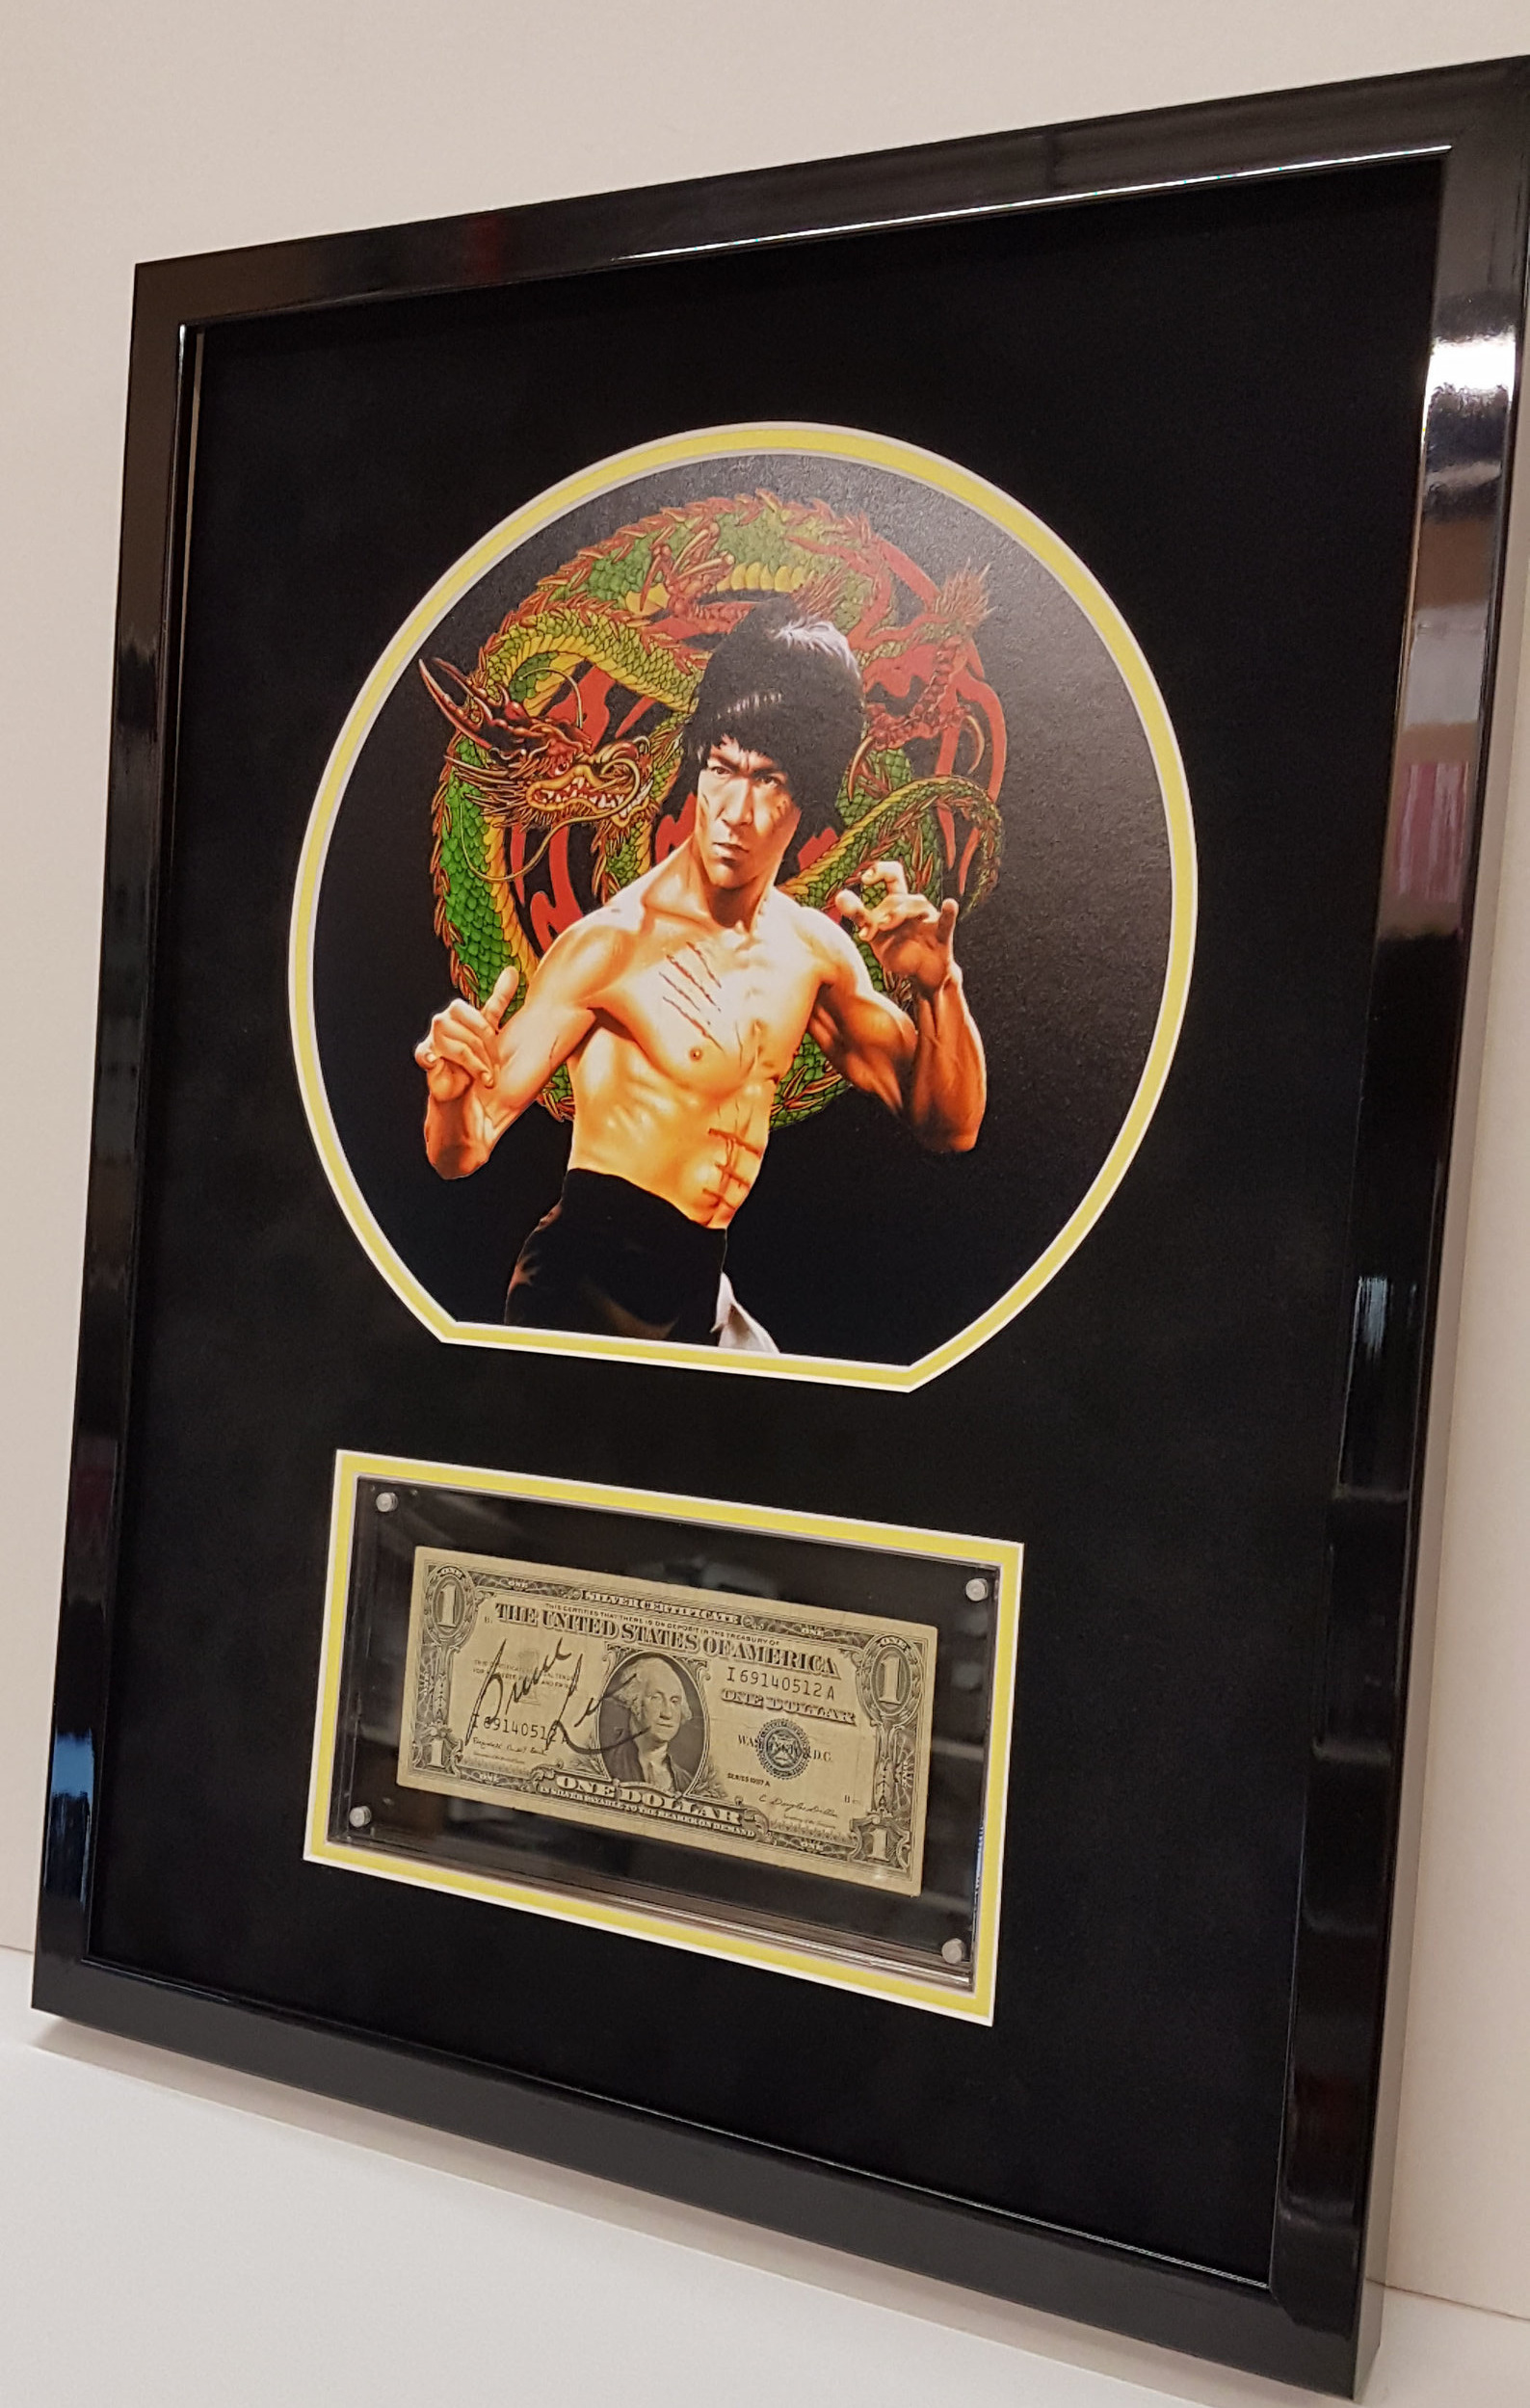 A Bruce Lee signed US dollar encased in its own perspex holder which had to be incorporated within the frame which meant we had to line the back and sides of the case in black without using adhesives. This then had to be held into place to stop it slipping. We framed this for Authentic Memorabilia.